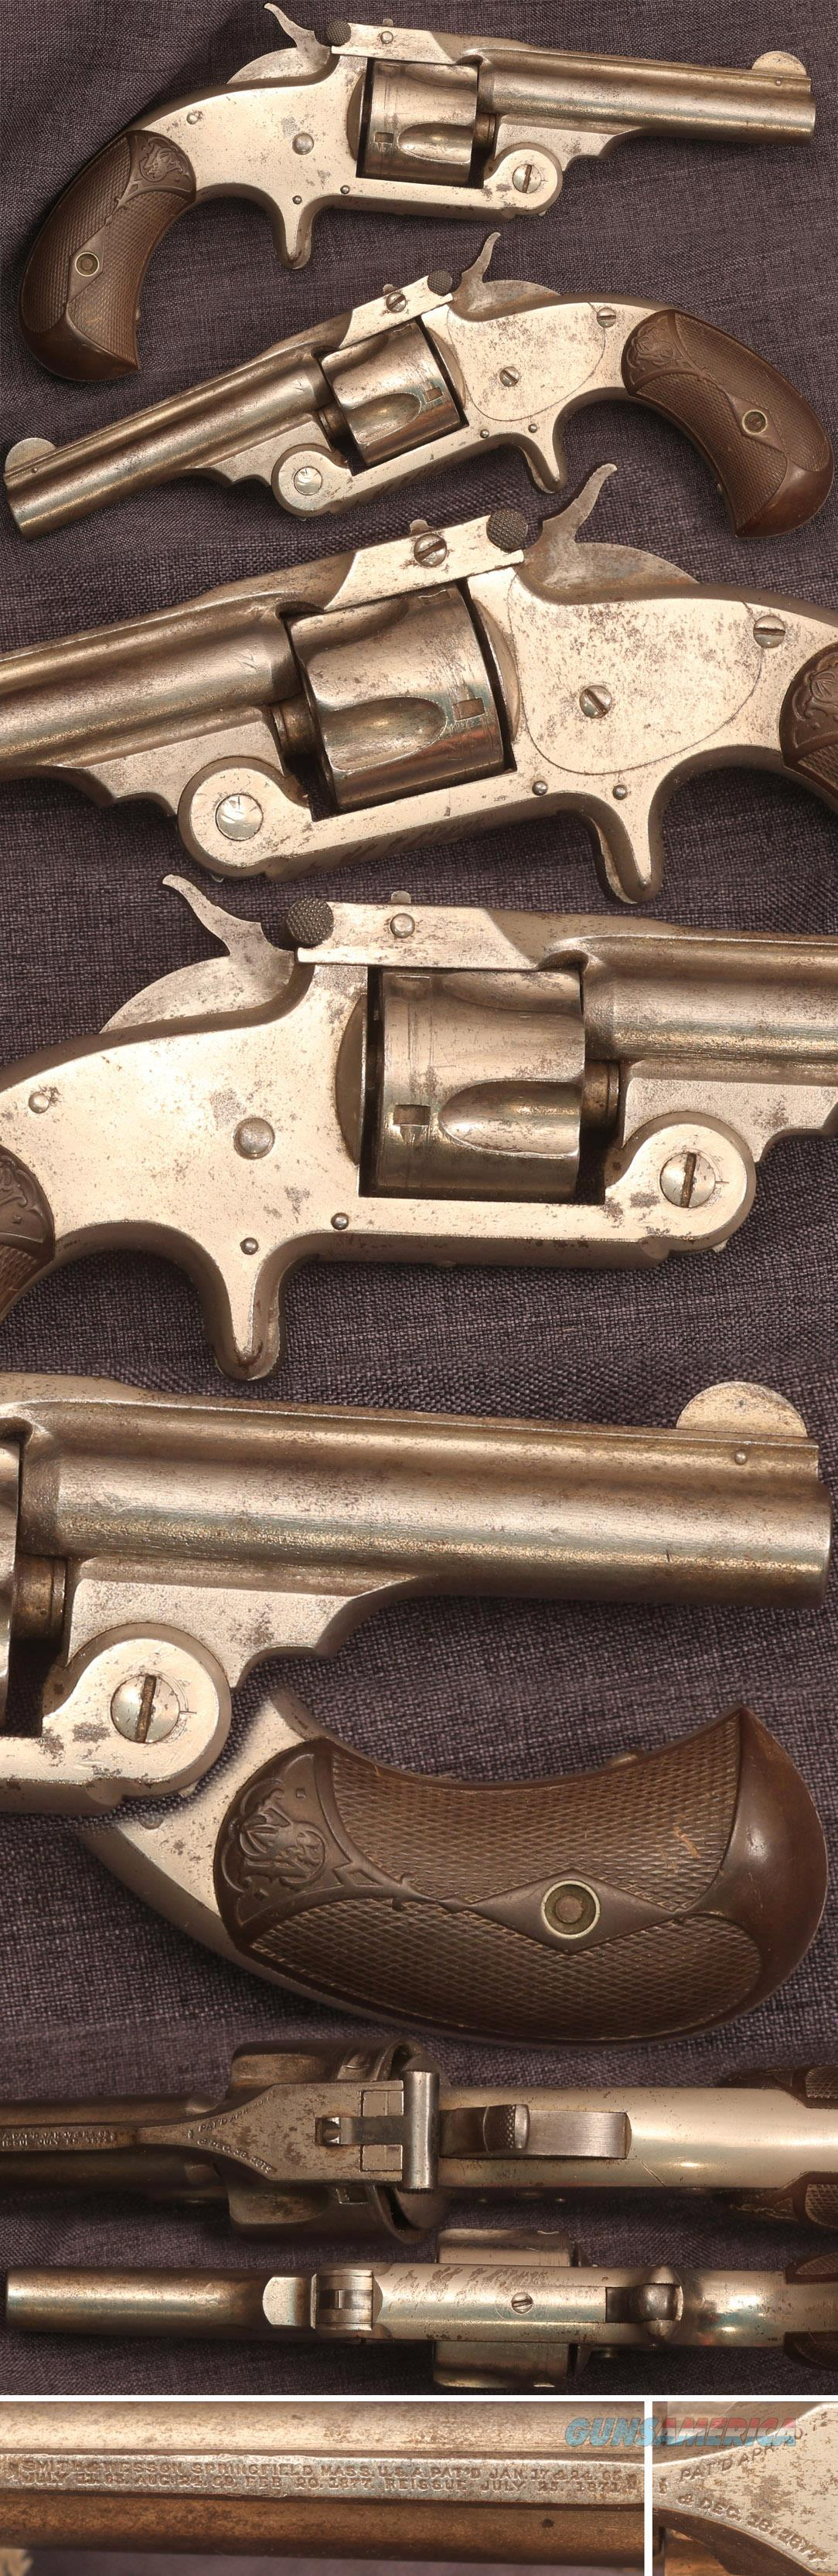 Smith & Wesson No 1-1/2 32 Single Action revolver  Guns > Pistols > Smith & Wesson Revolvers > Pre-1899